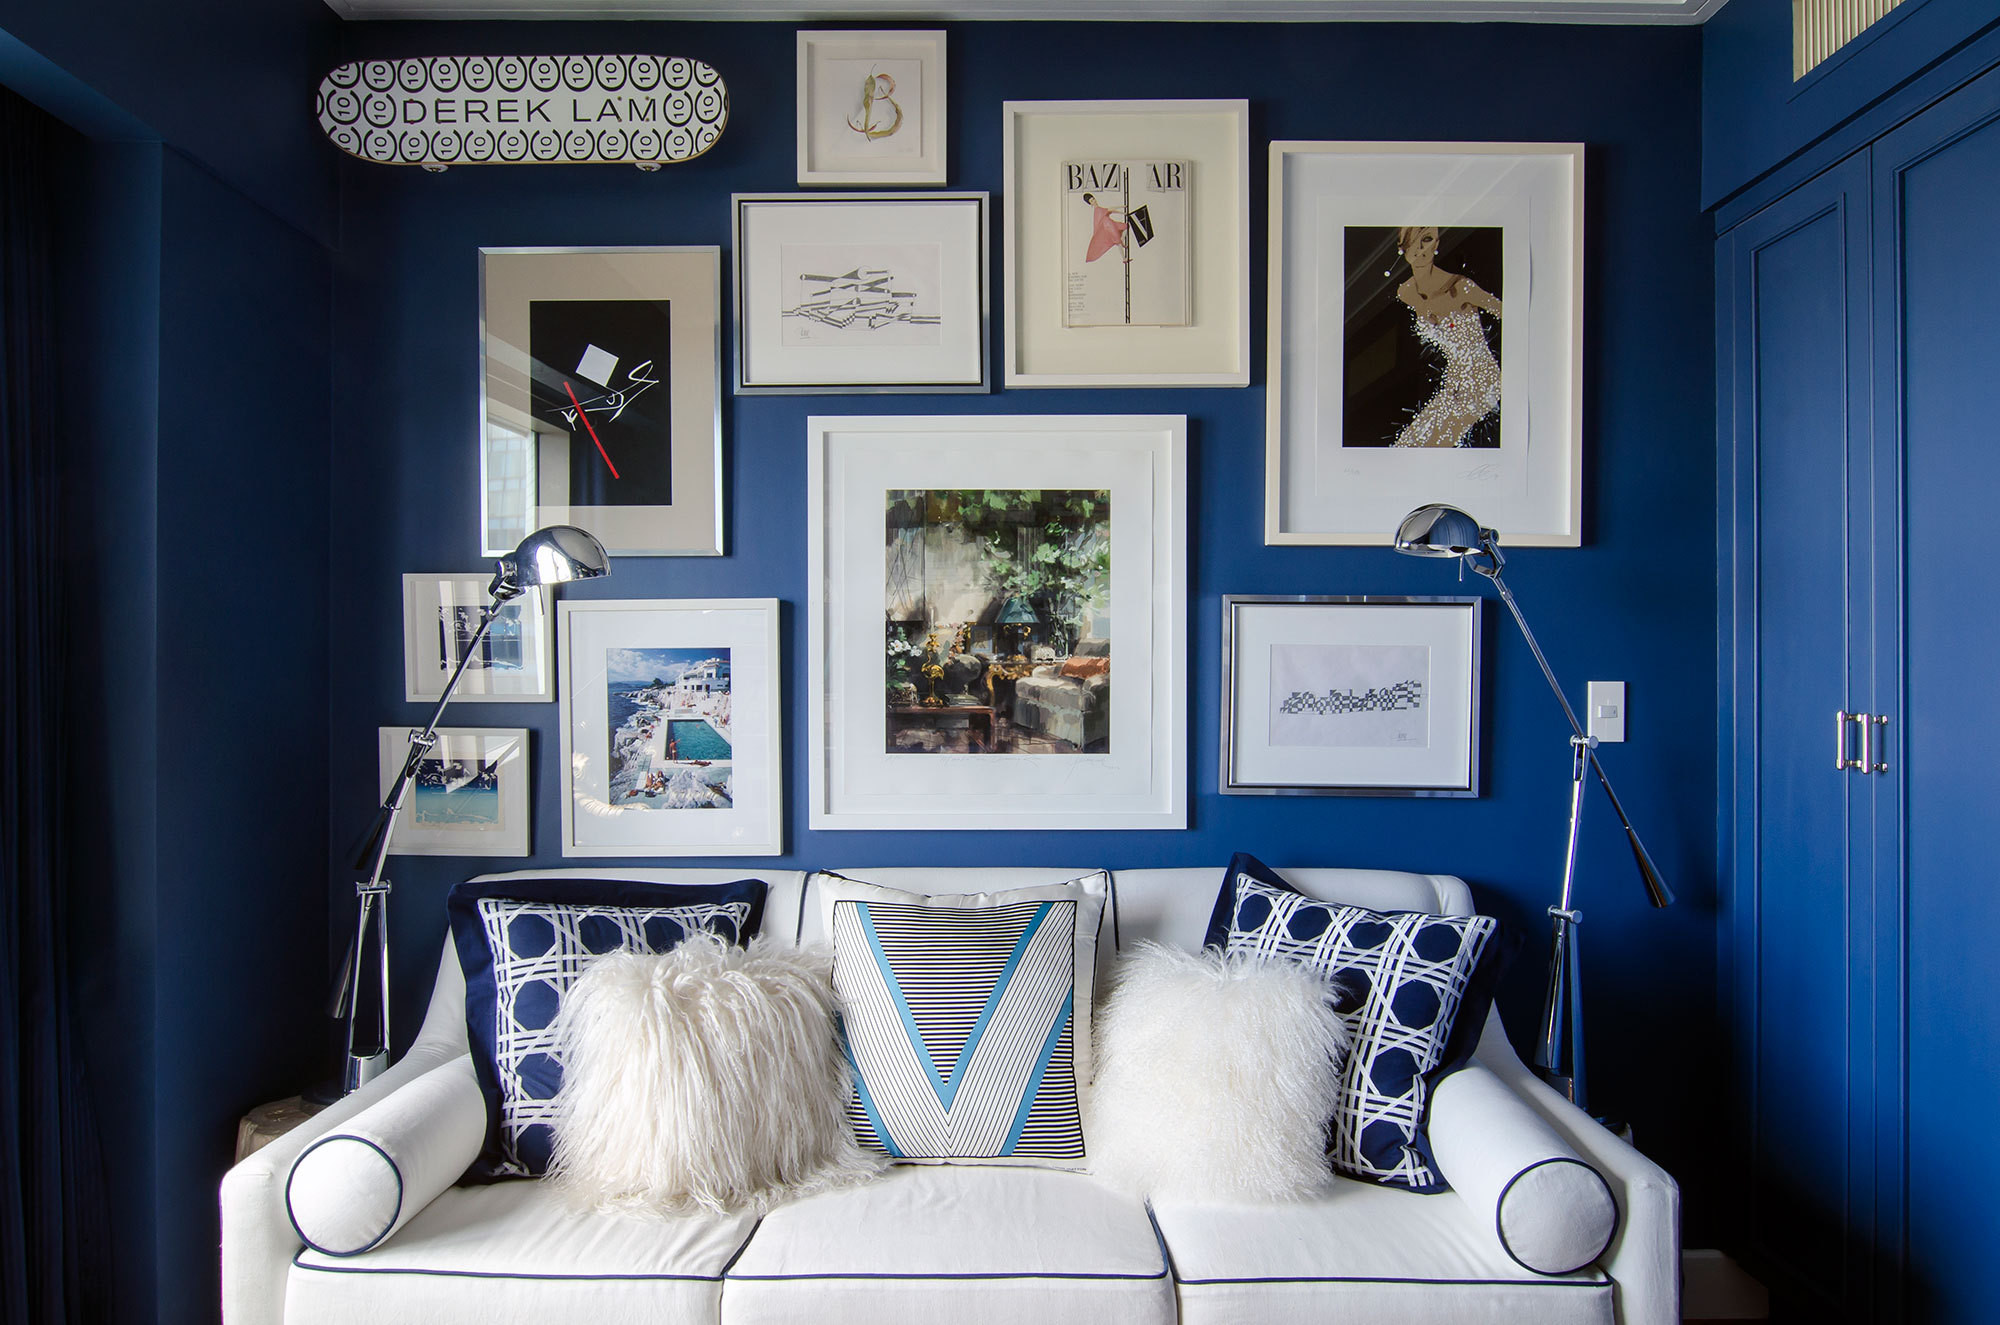 White-framed works and a pristine sofa create dramatic contrast in the indigo-hued study.